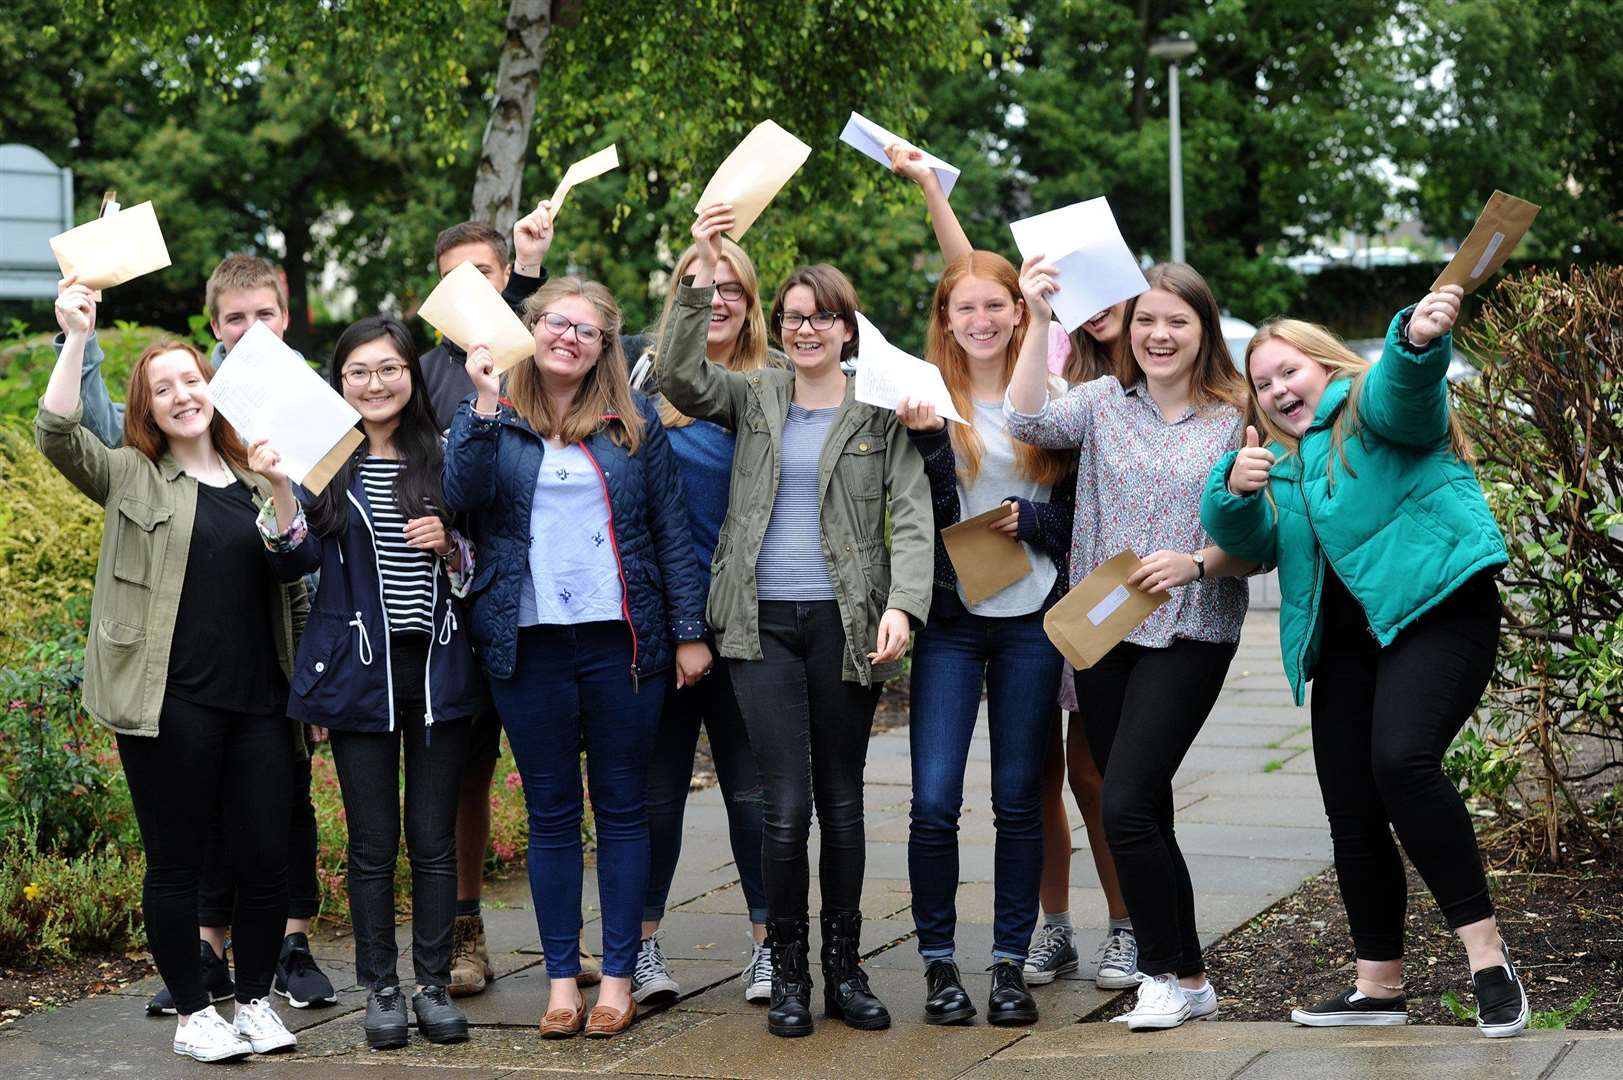 Some of last year's A-level students at Bury's County Upper School